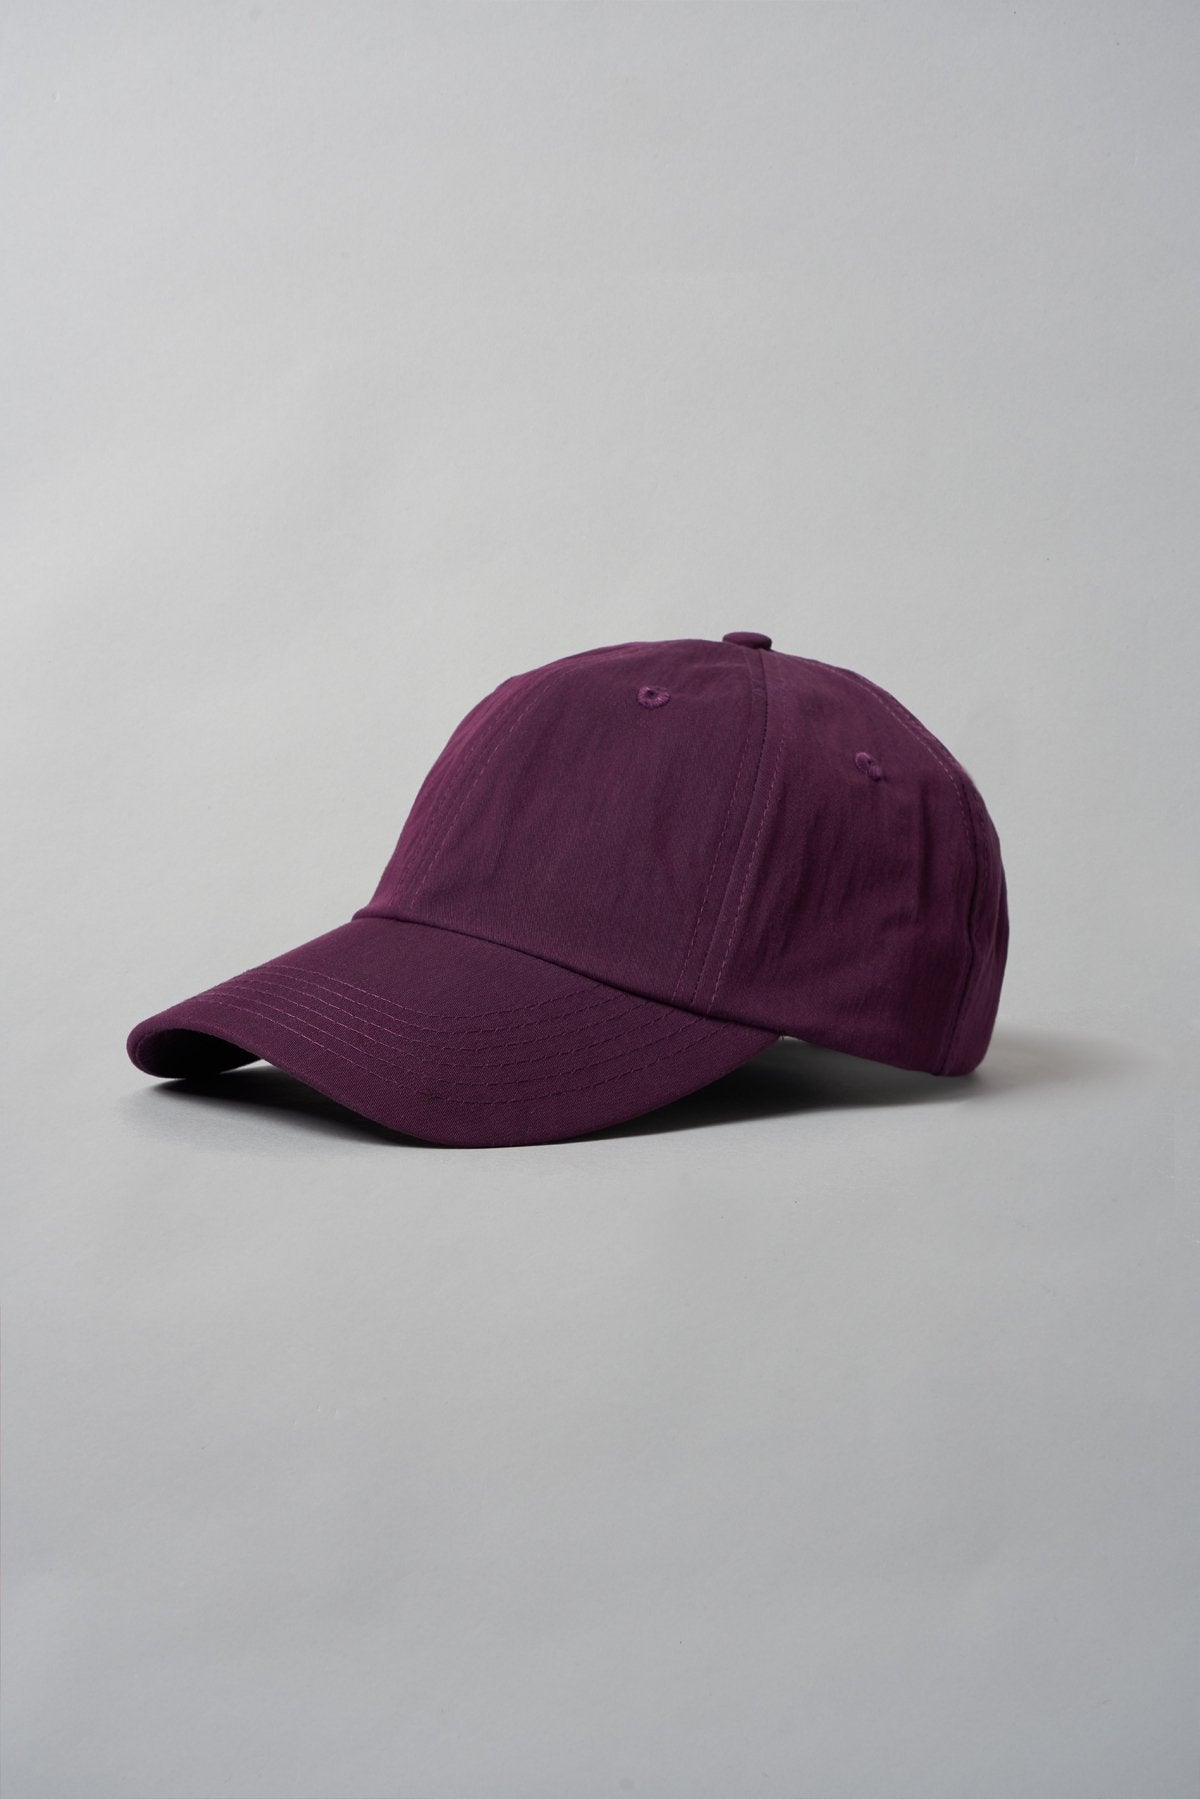 ØLÅF Cap Purple, Italian cotton nylon fabric, Branded velcro strap, One size fits all